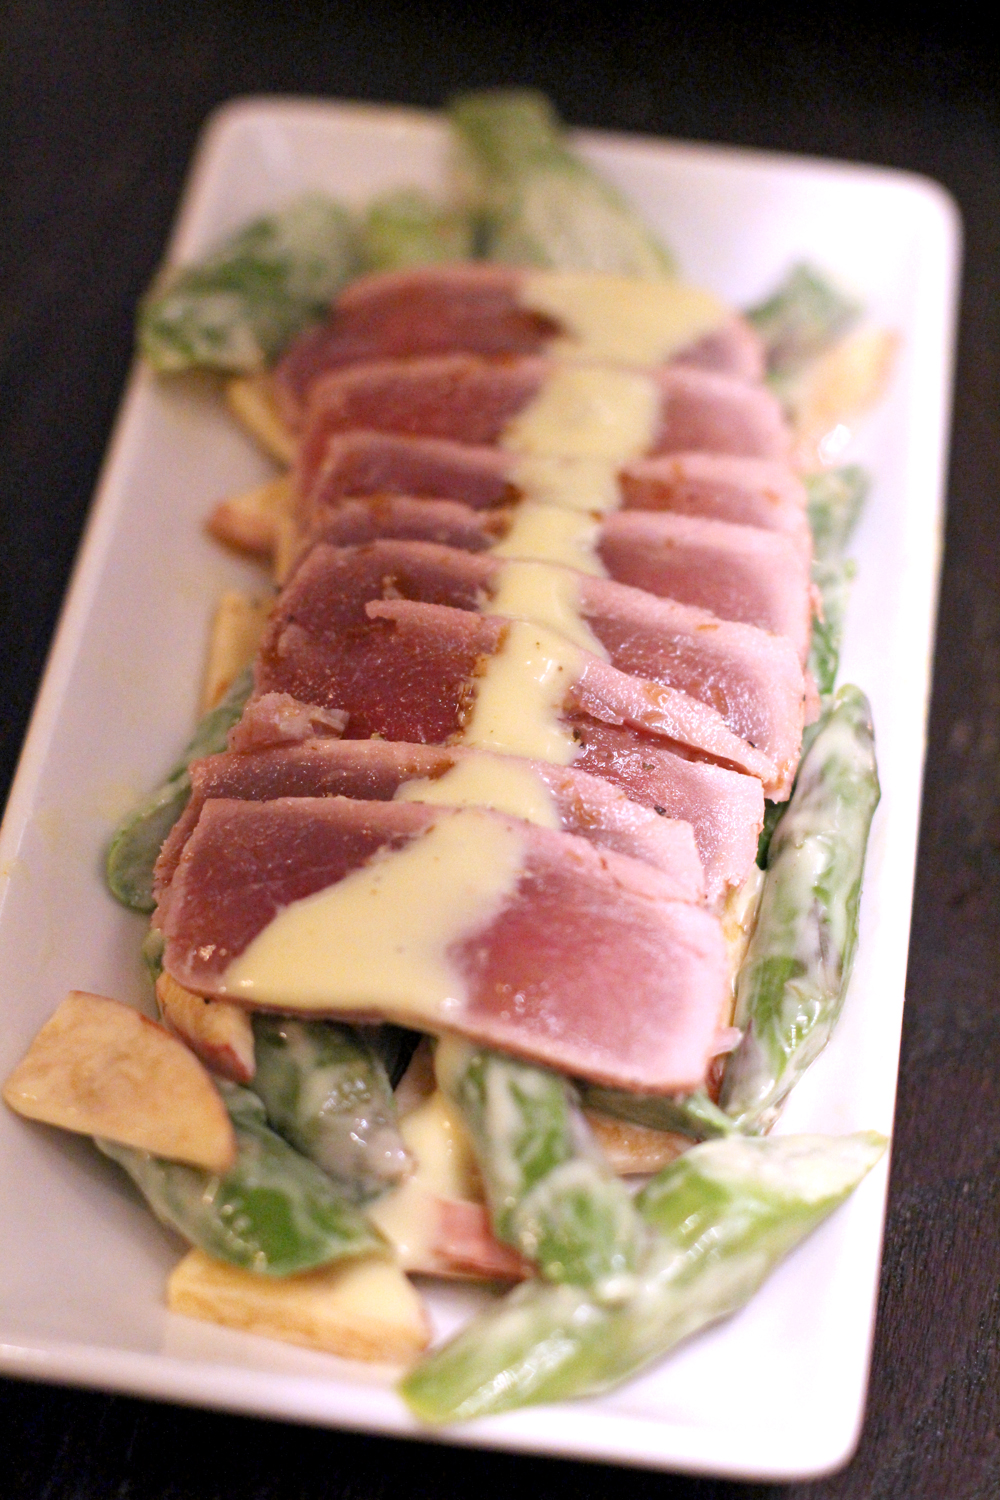 Seared ahi tuna at P.F. Chang's restaurant in London - UK lifestyle blog